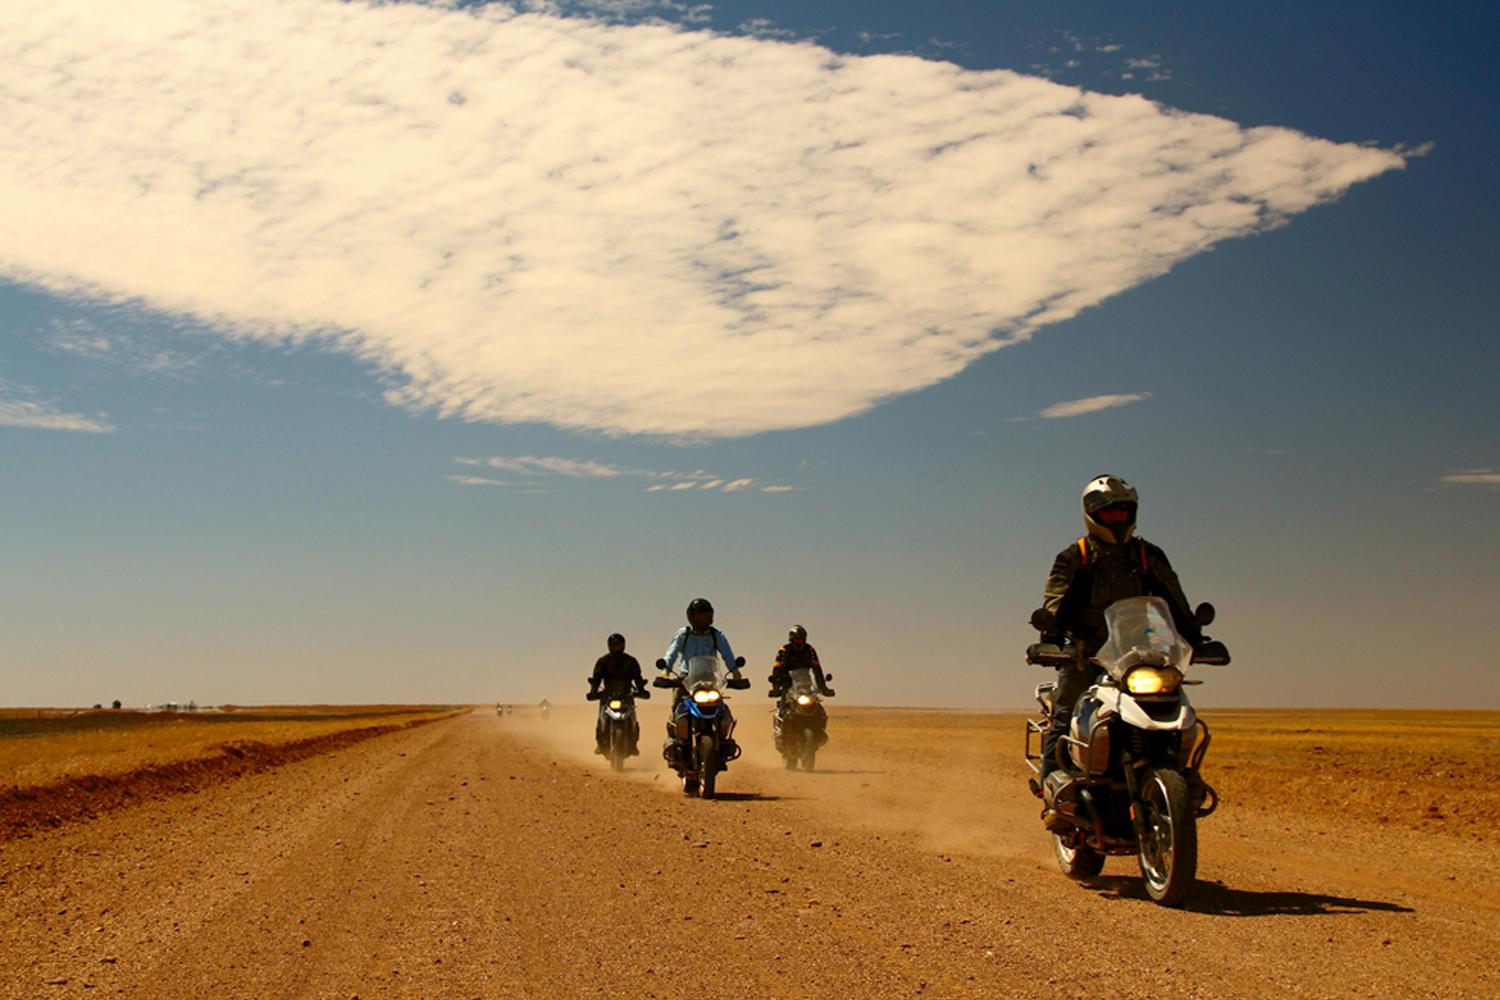 Australia Encompassed Motorcycle Tour